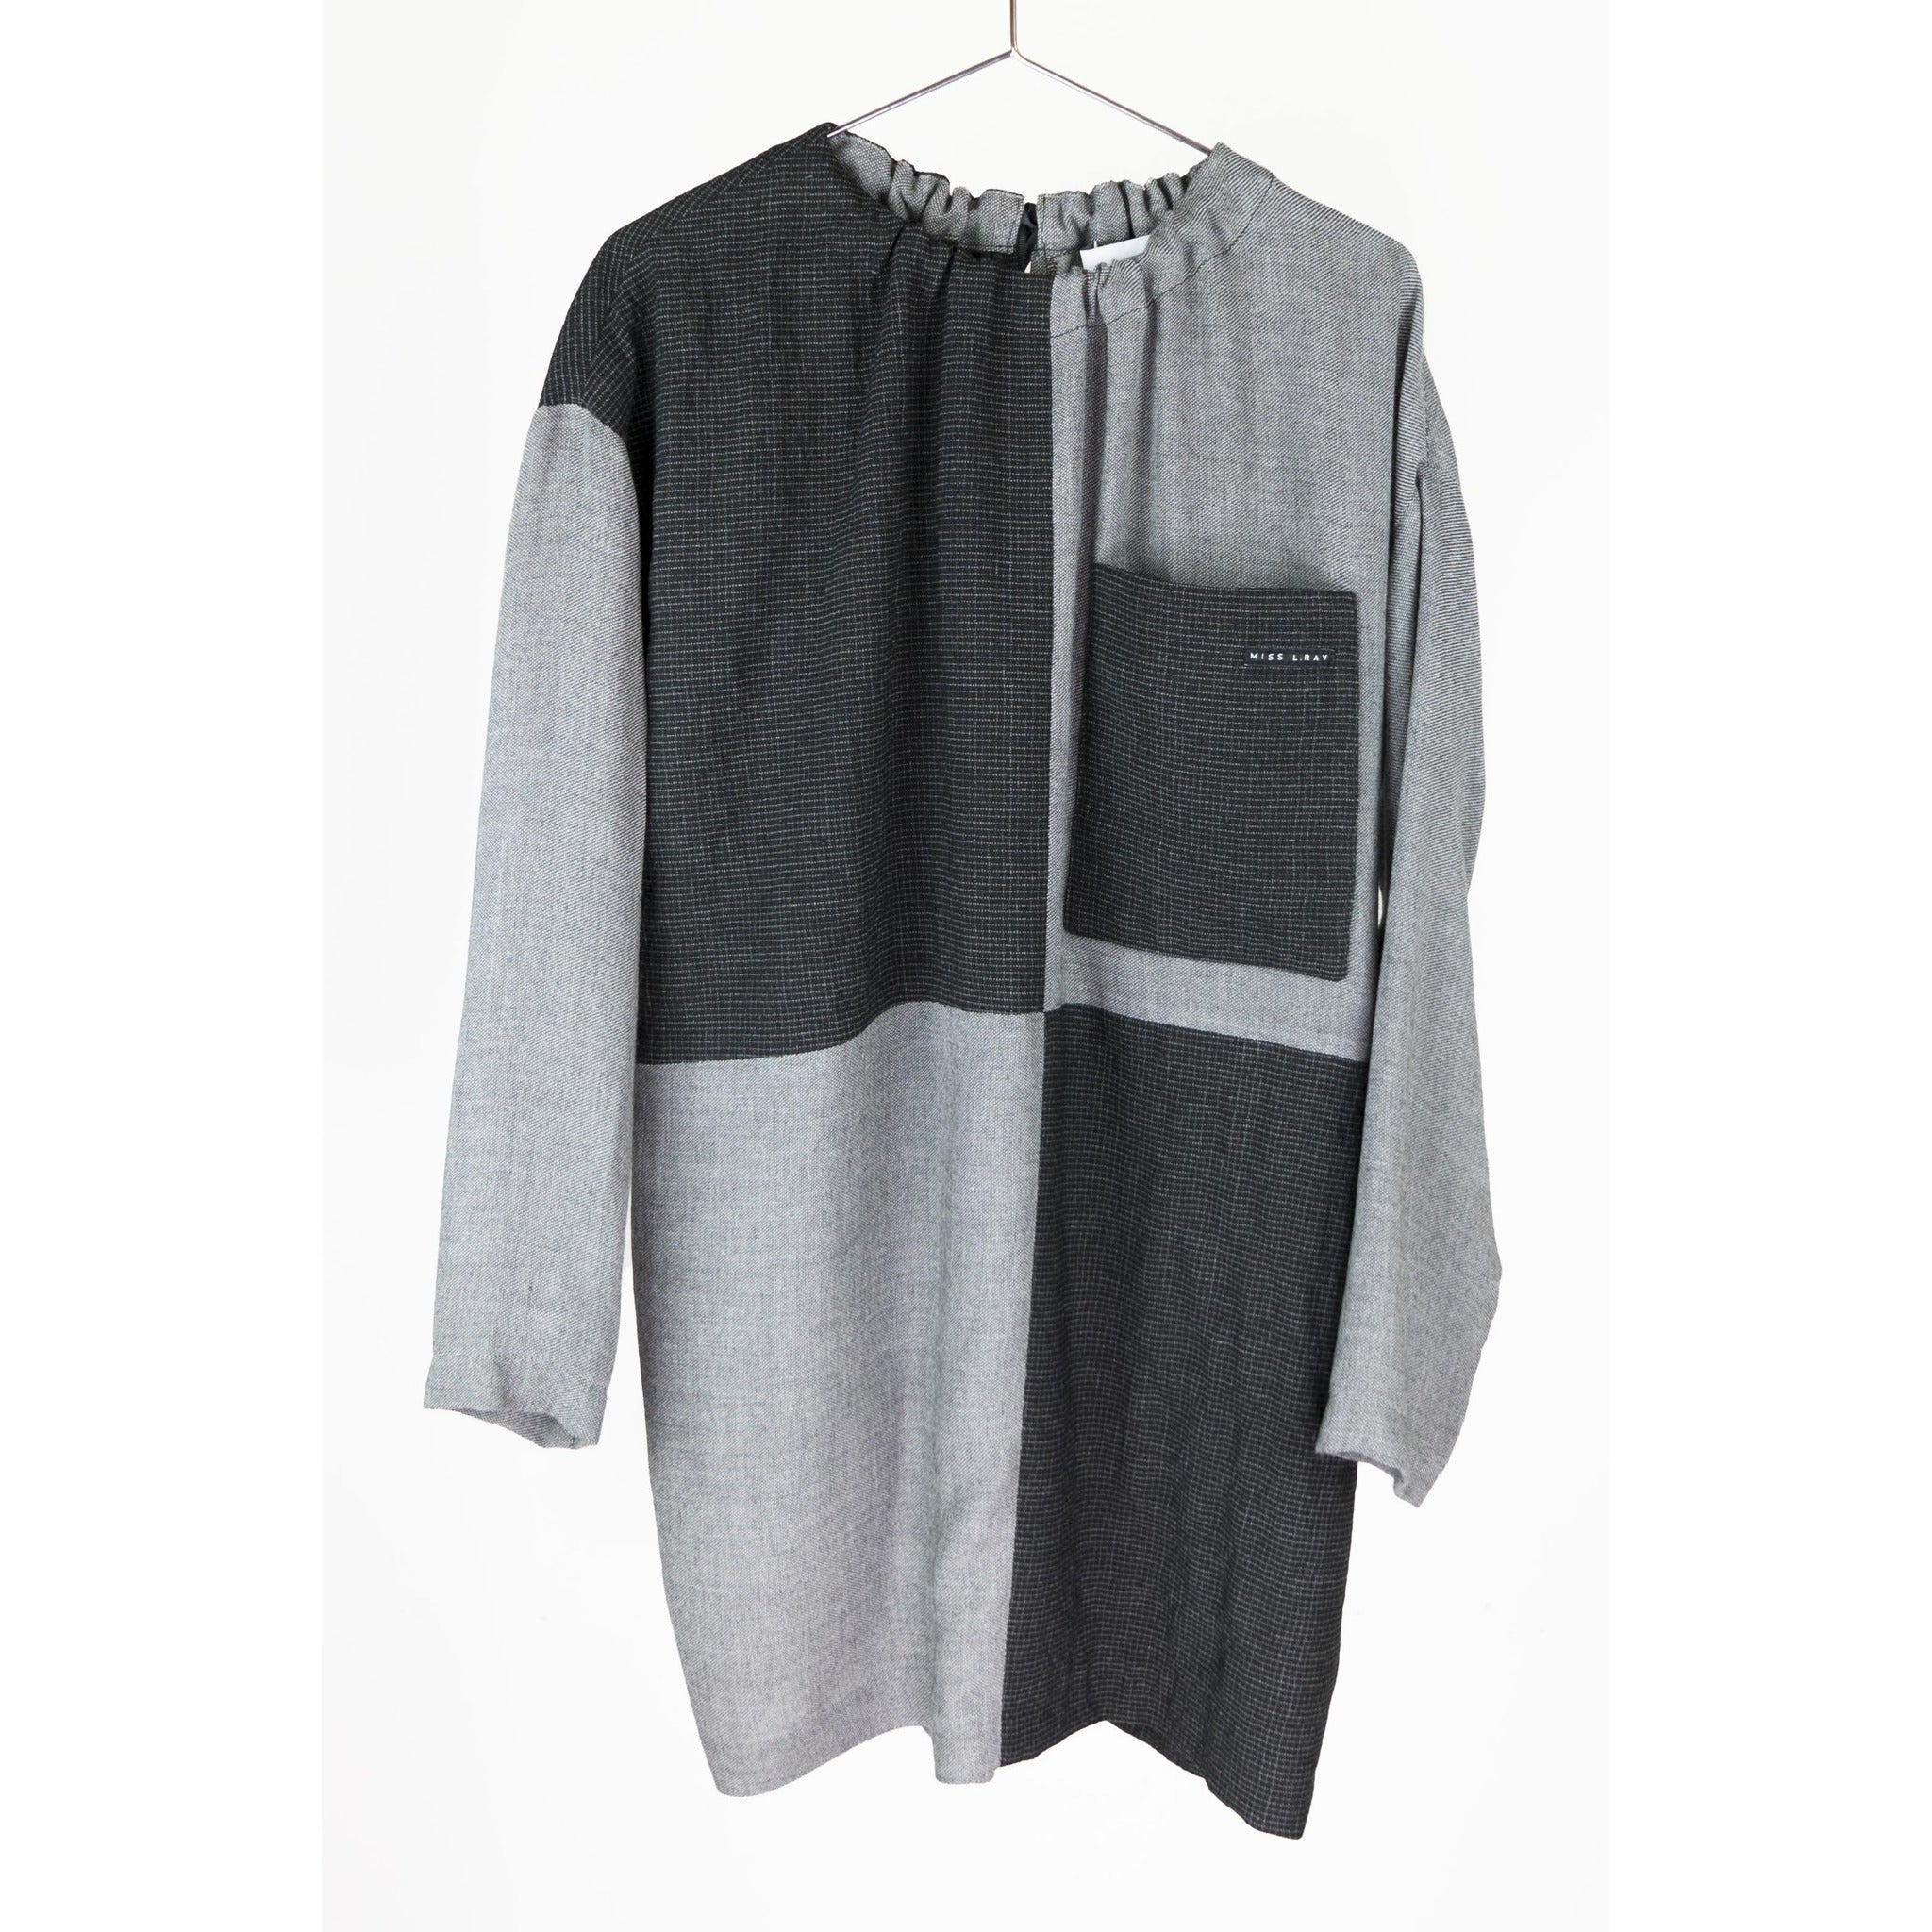 Miss L Ray Bao Charcoal/Grey Checkered Dress